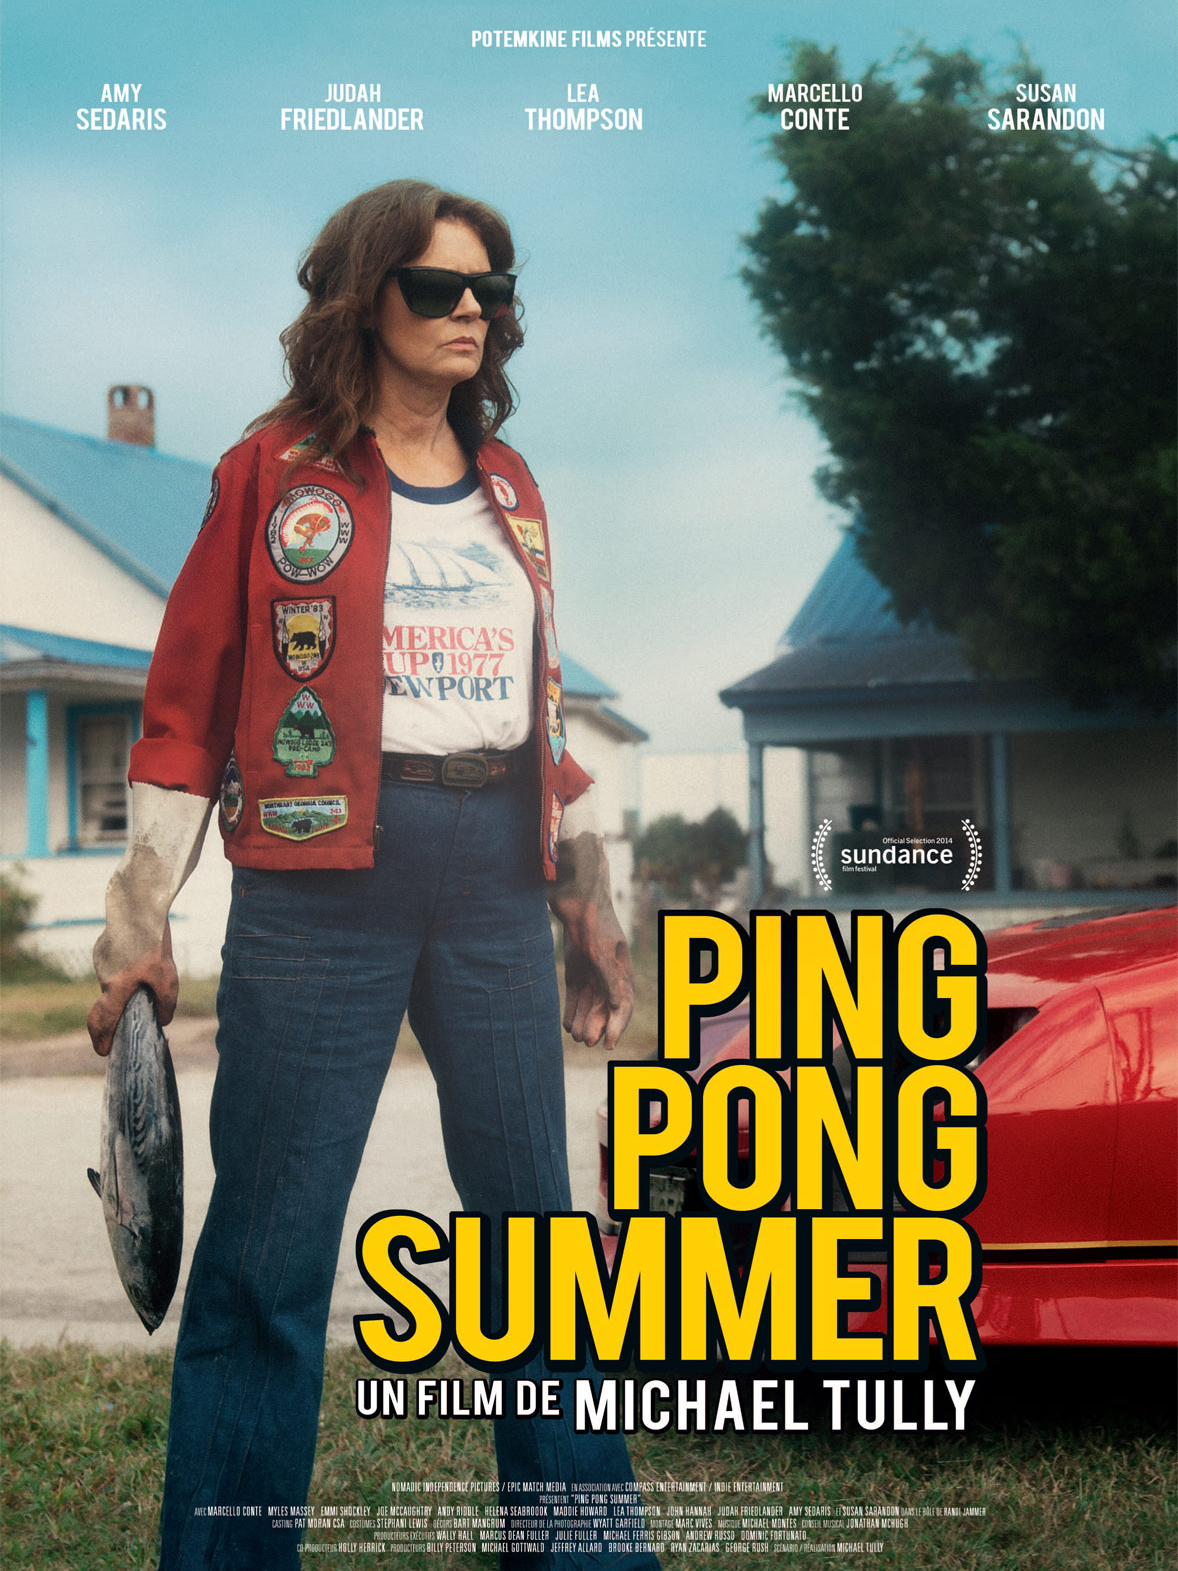 Ping Pong Summer | Tully, Michael (Réalisateur)